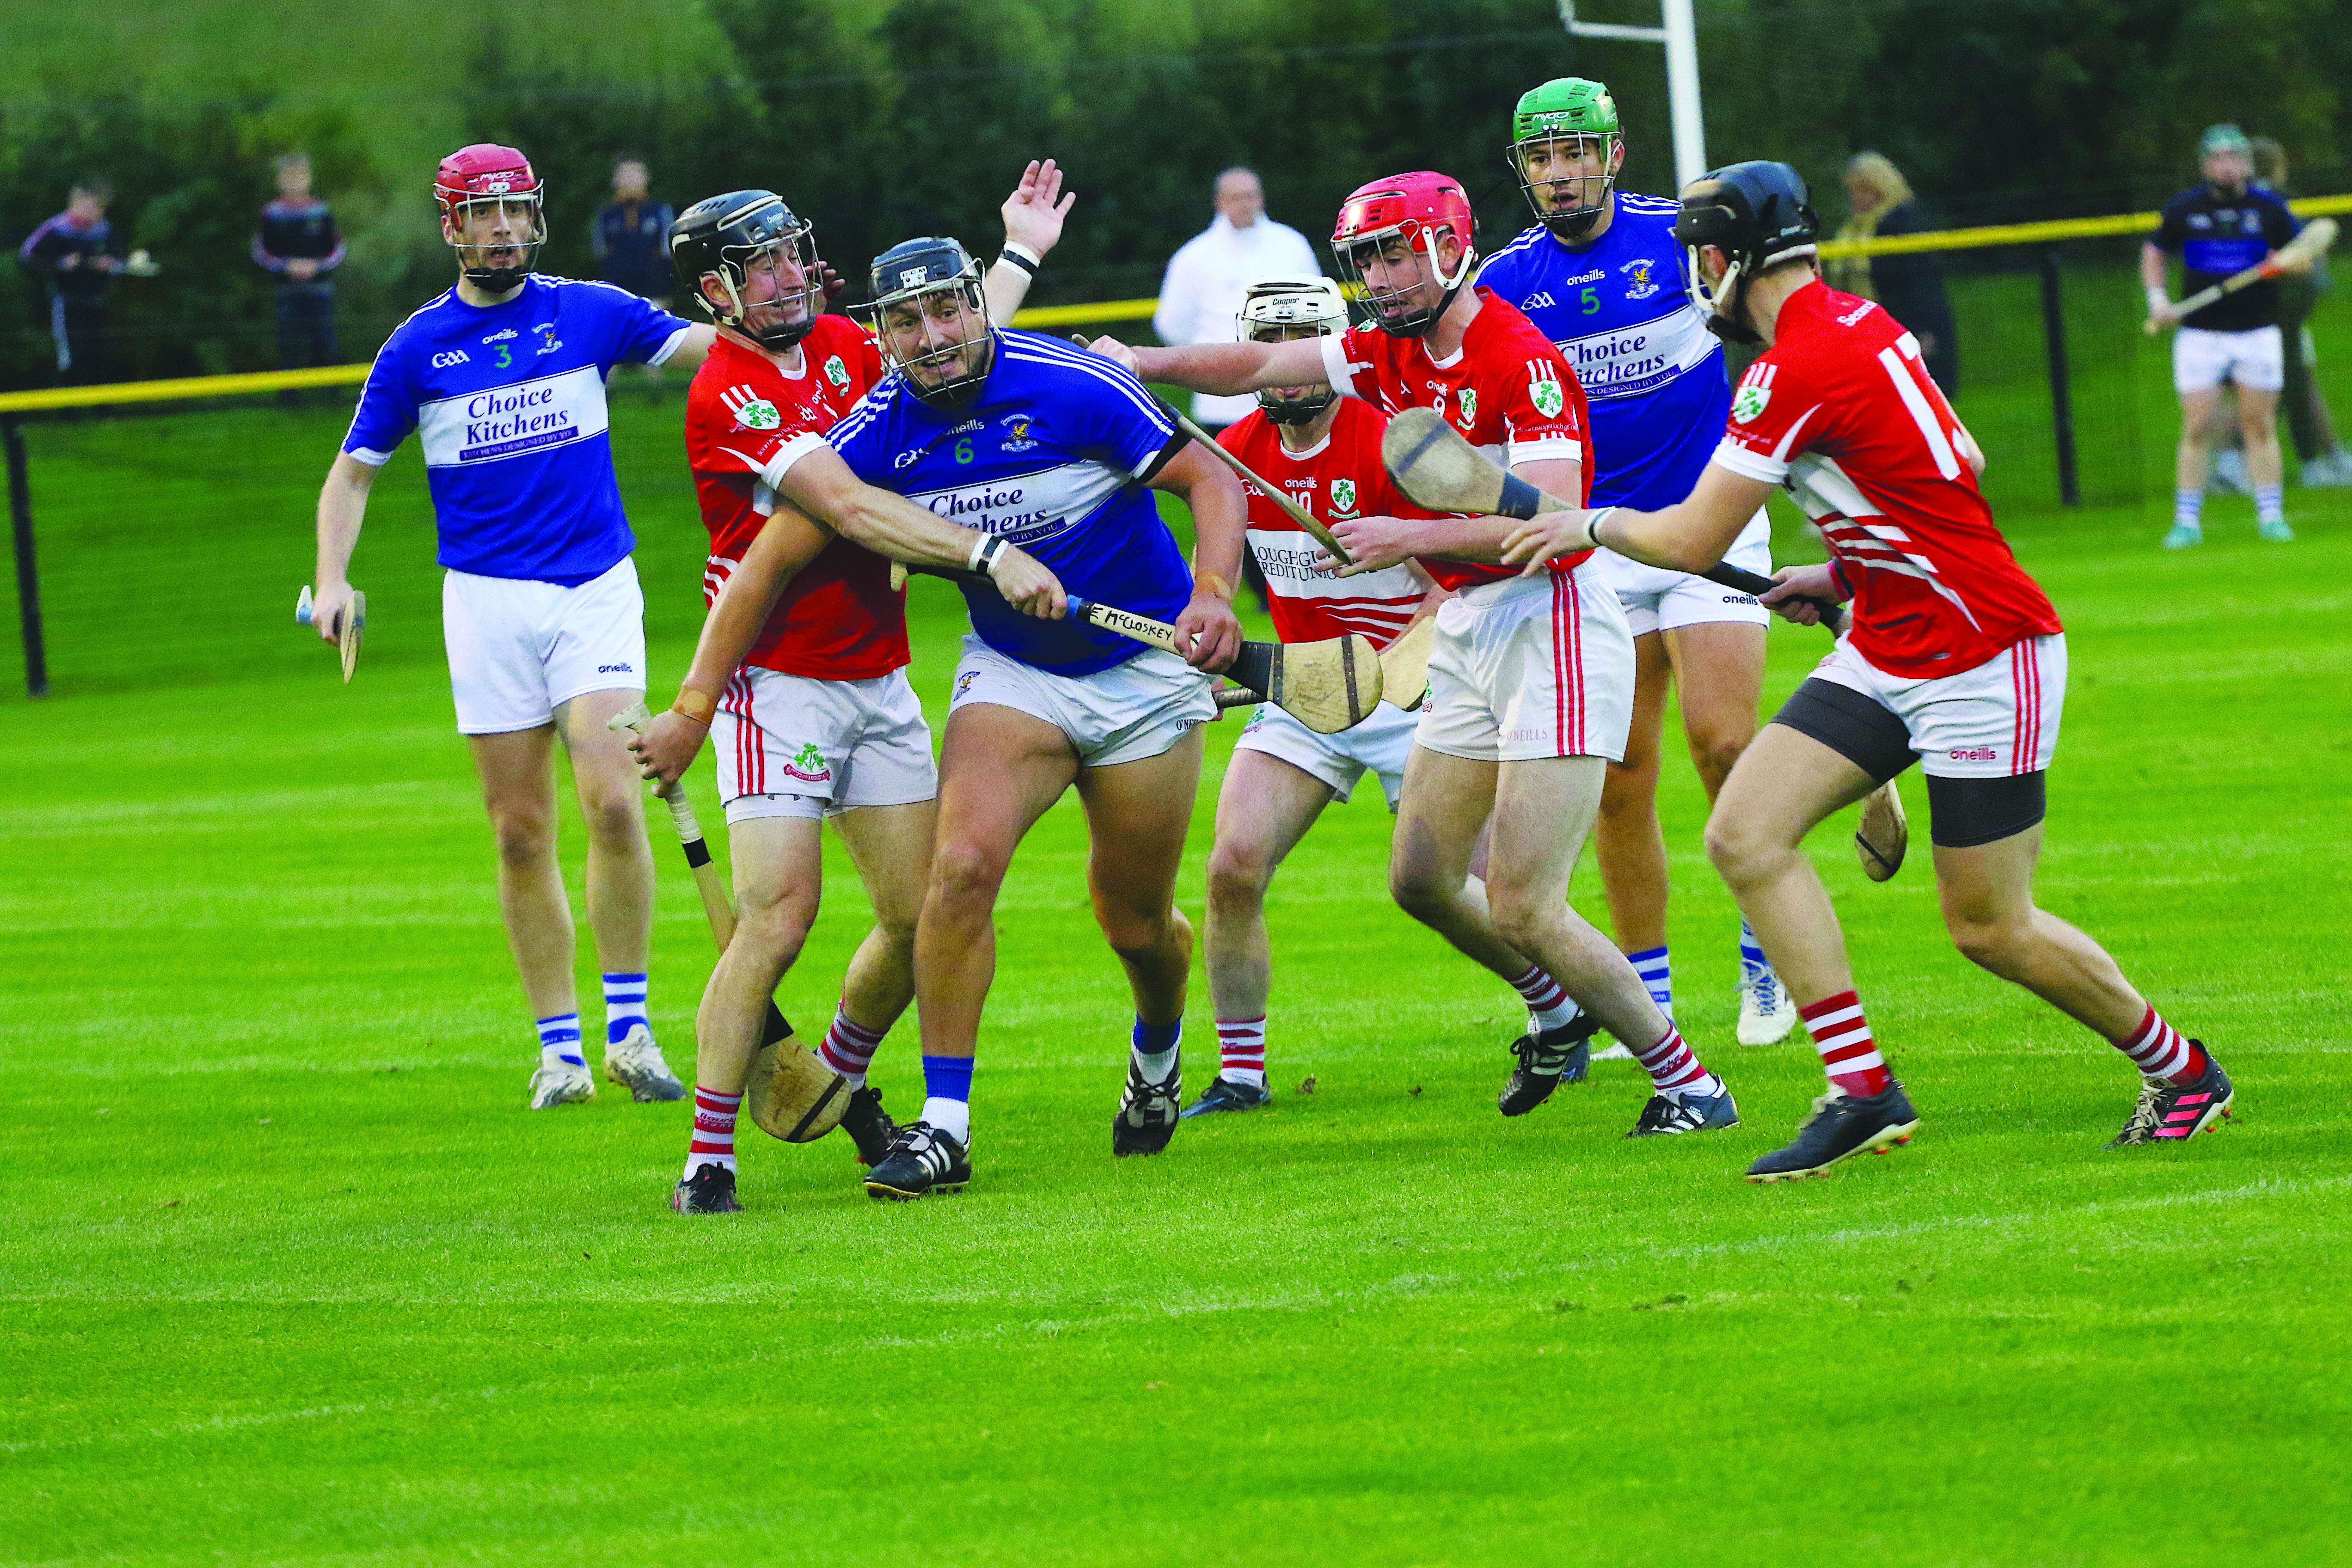 Domhnall Nugent, pictured in action, says the quarter-final win over Loughgiel has lifted a lot of pressure from the shoulders of the Johnnies' players